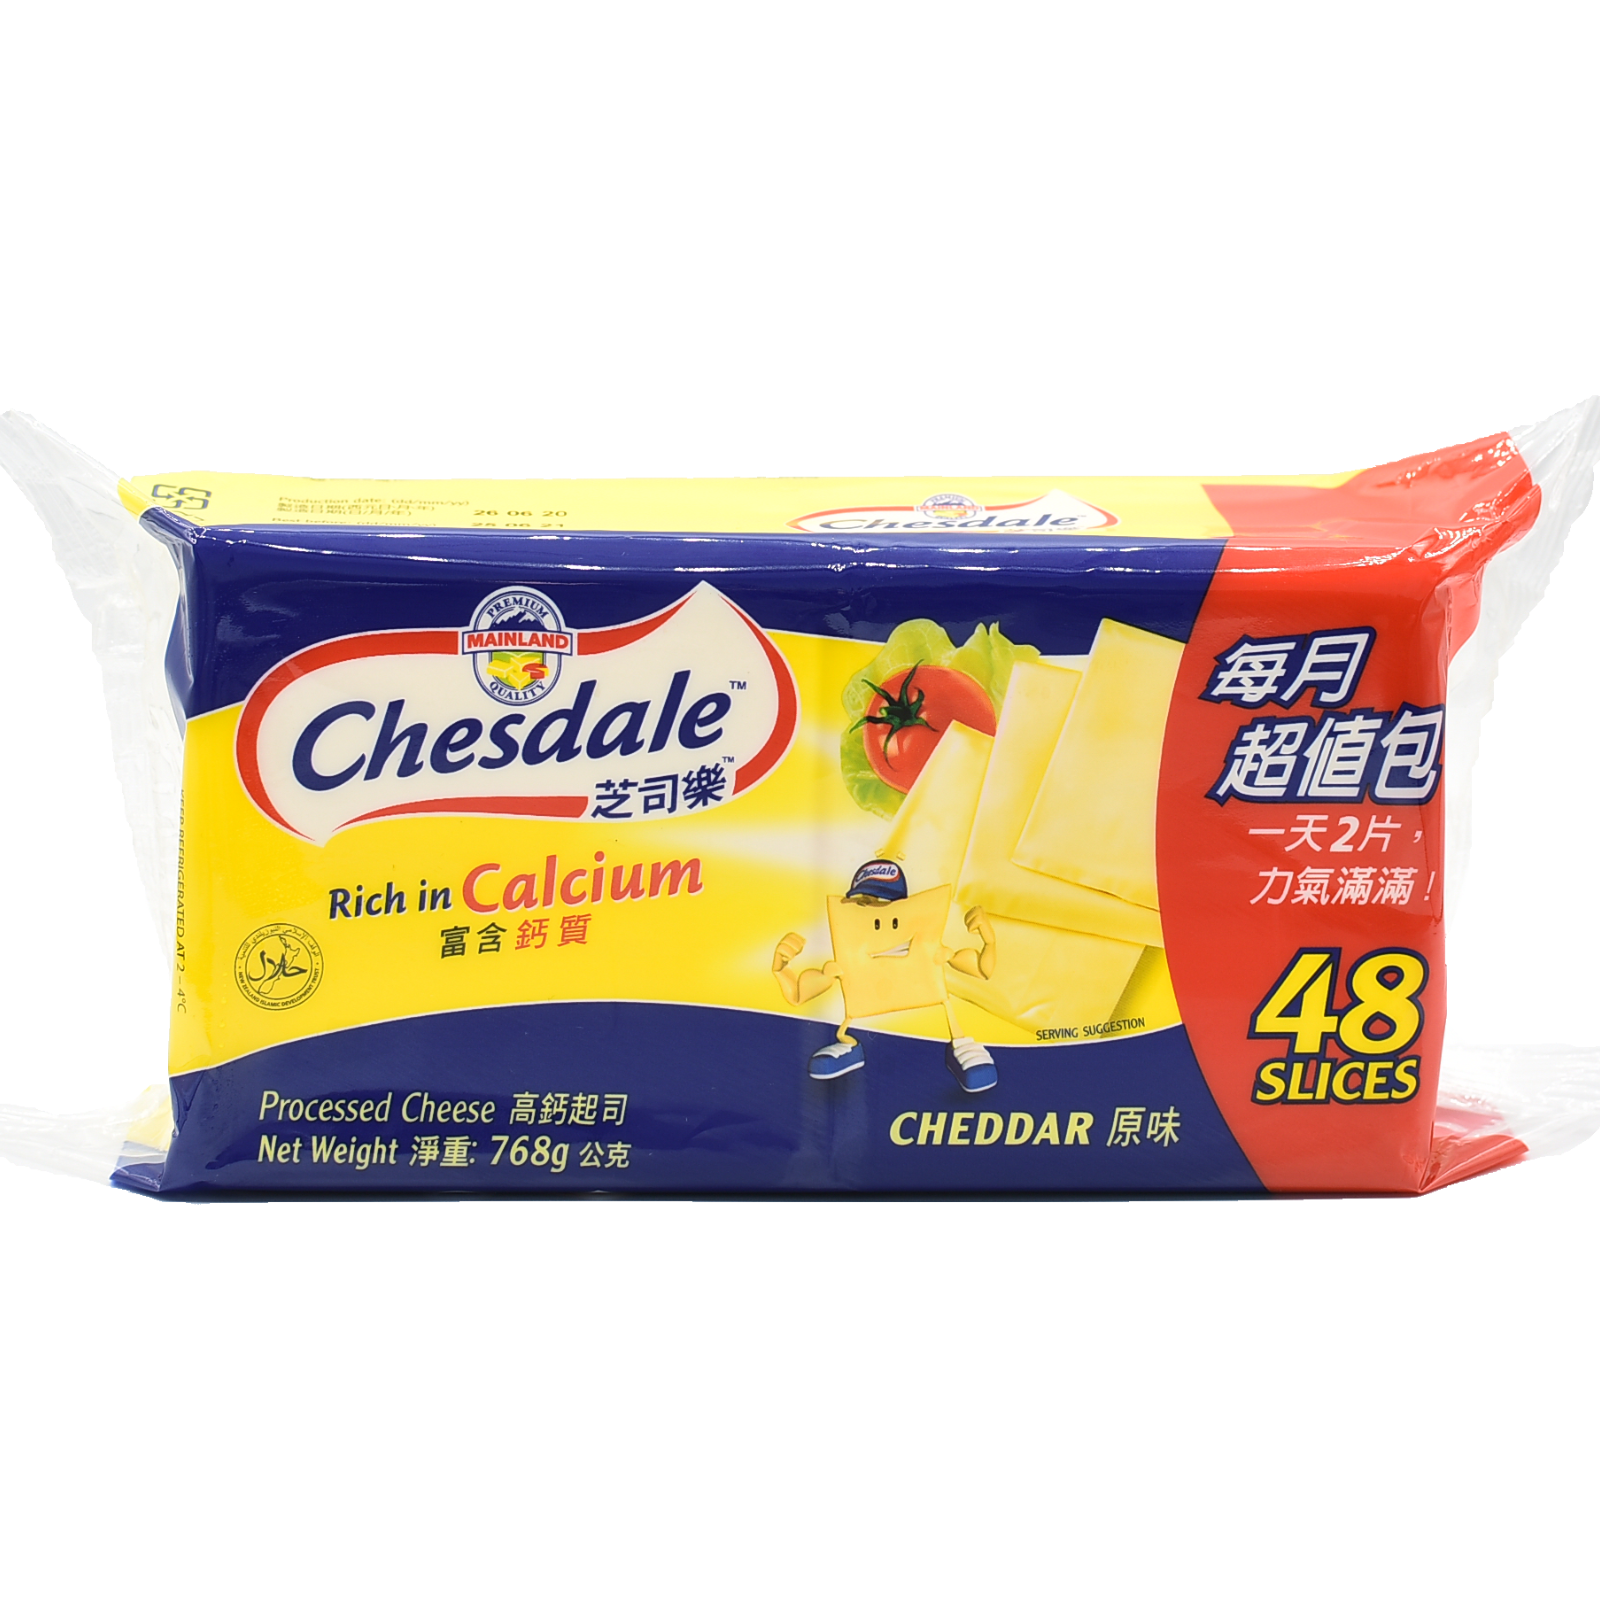 Chesdale Processed Cheese Slice 768g 48slices.png